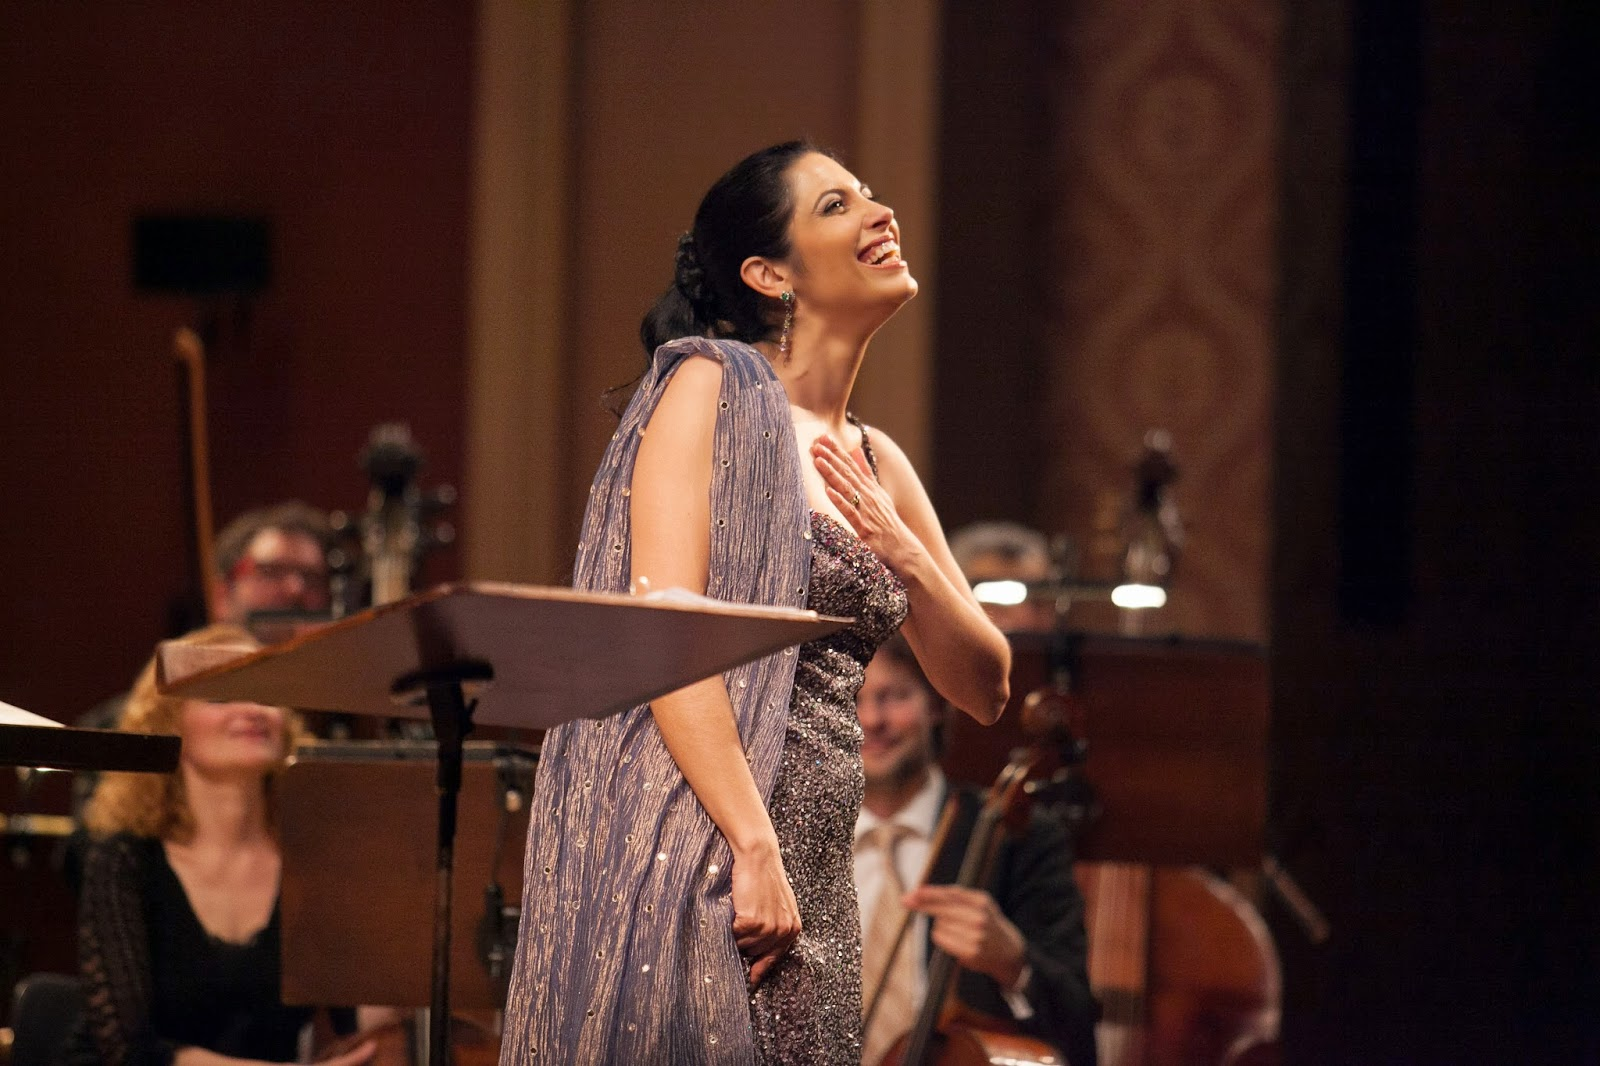 Vivica receiving the adulation of the Prague audience after her concert IL DIVINO BOEMO with Collegium 1704 and Václav Luks [Photo by Michal Adamovský, © 2014 by Collegium 1704]